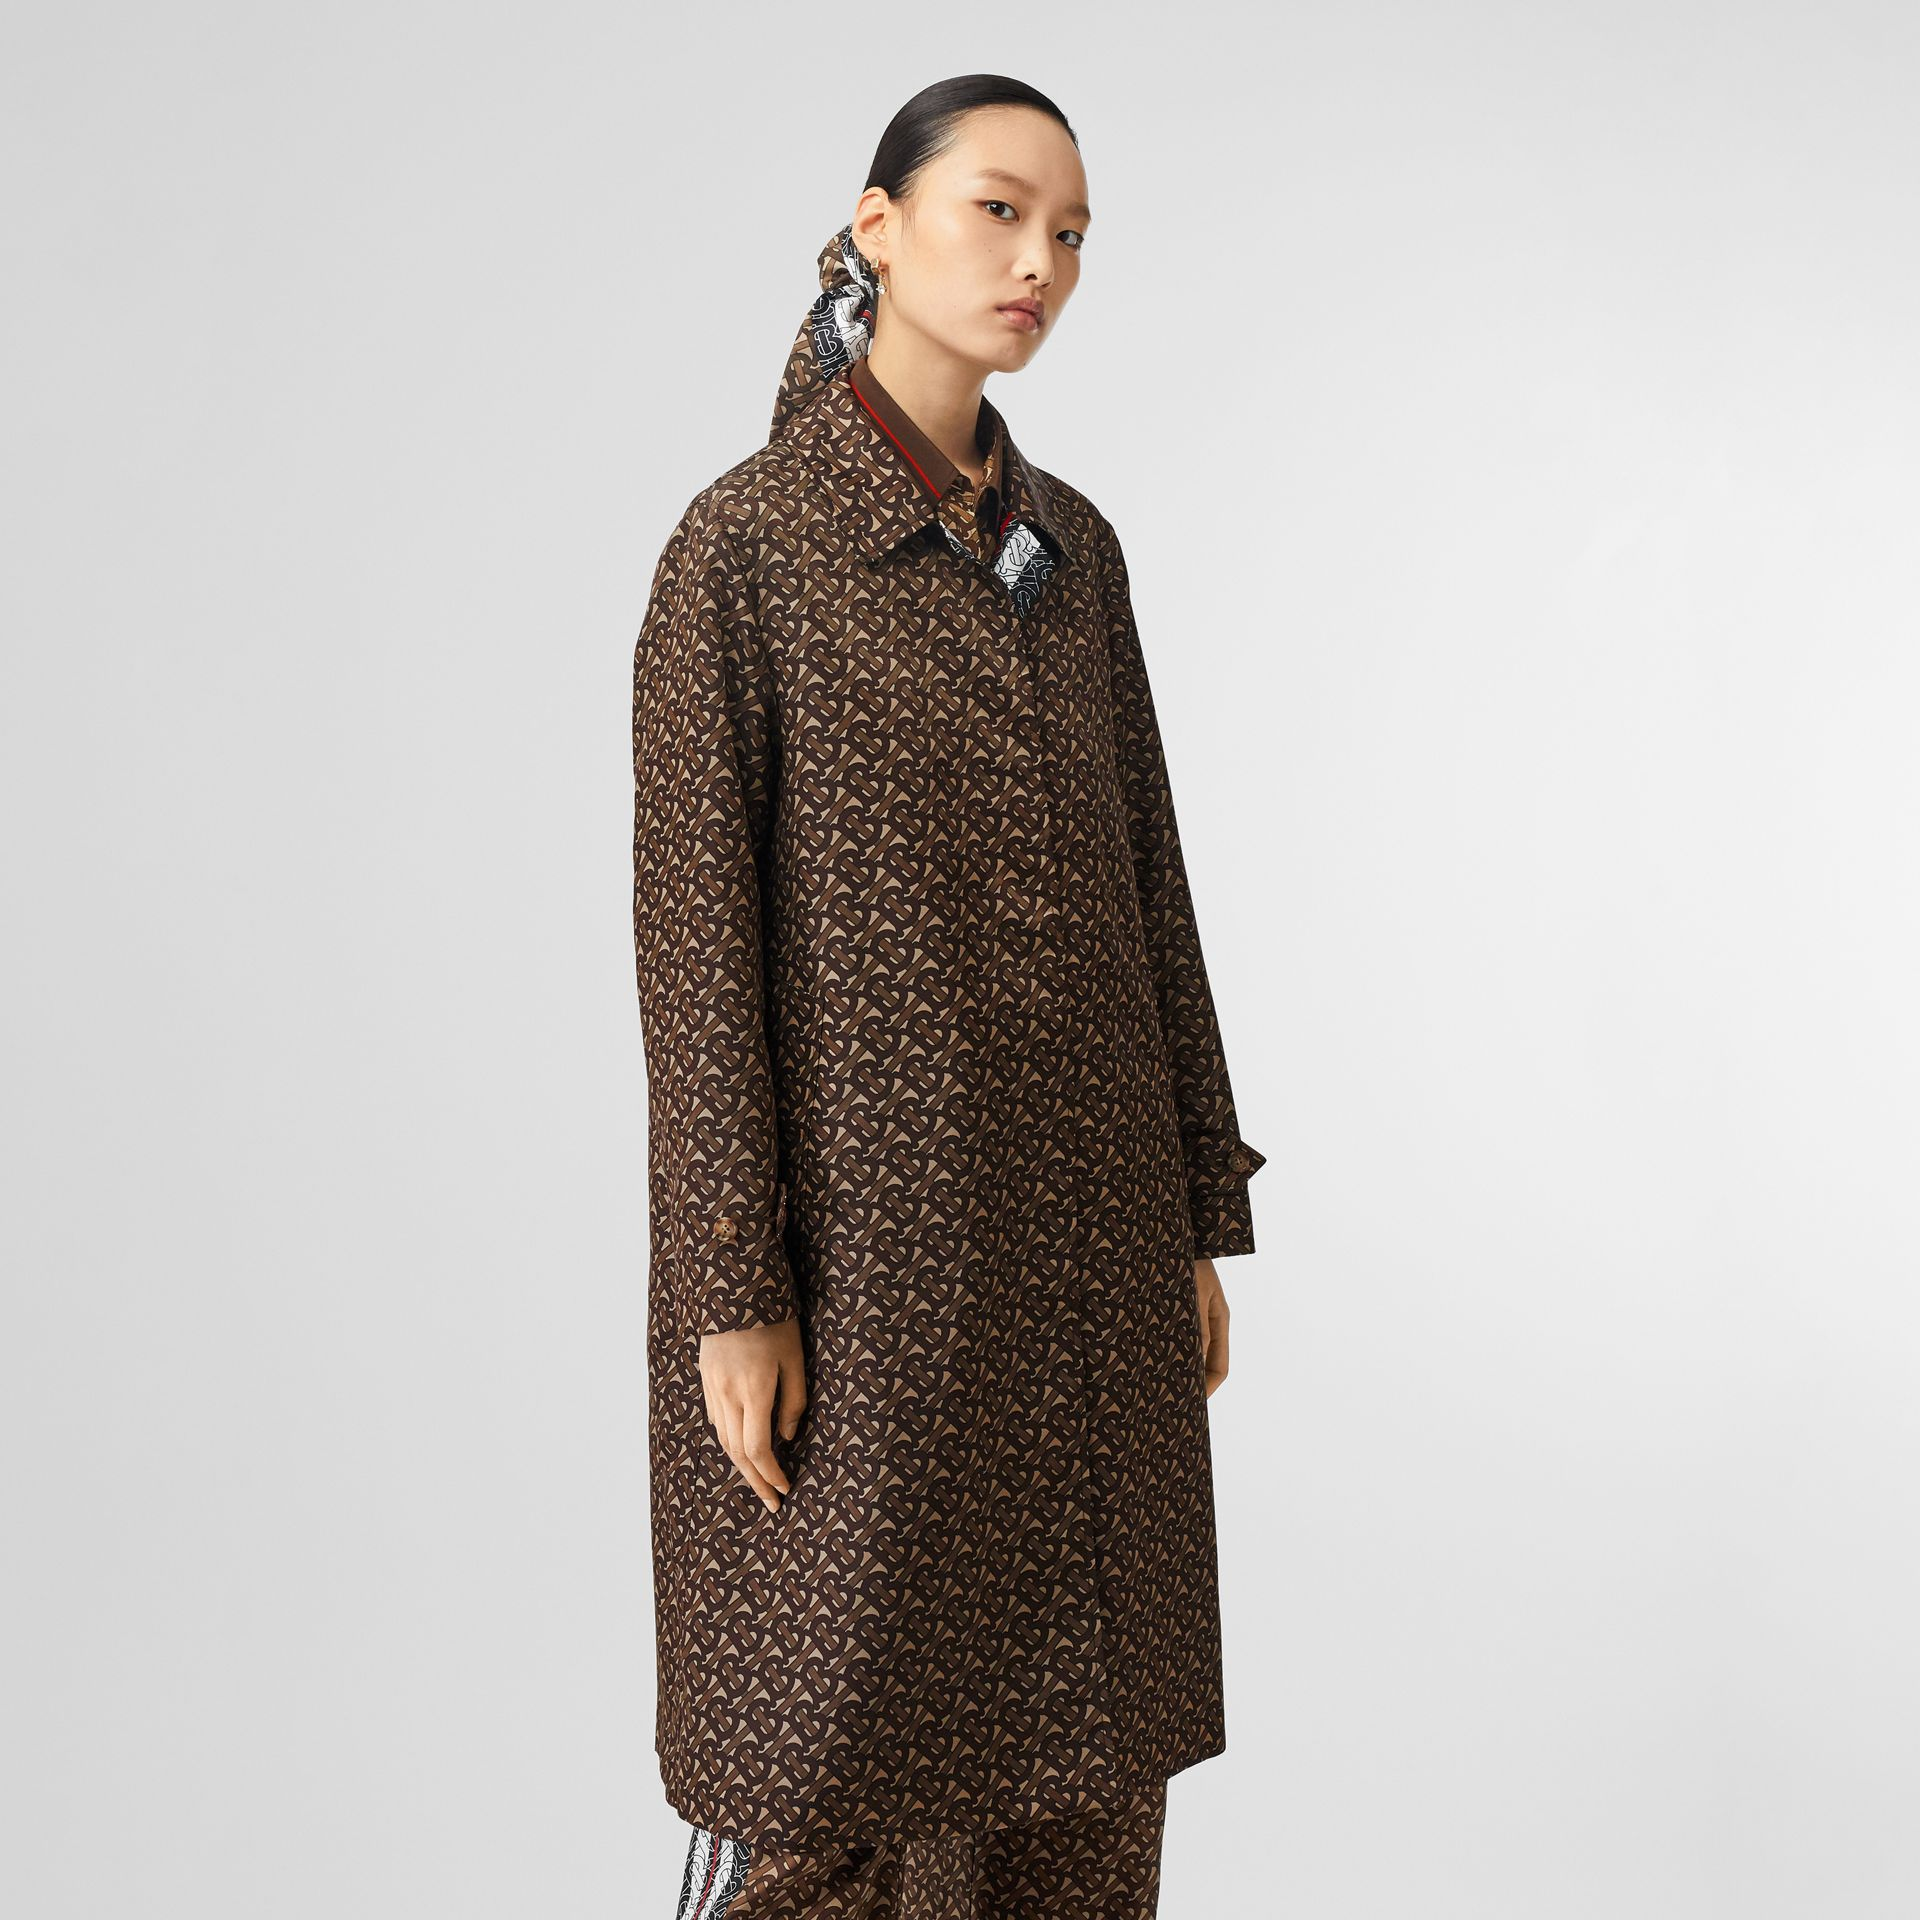 Monogram Stripe Print Nylon Car Coat in Bridle Brown - Women | Burberry United States - gallery image 5